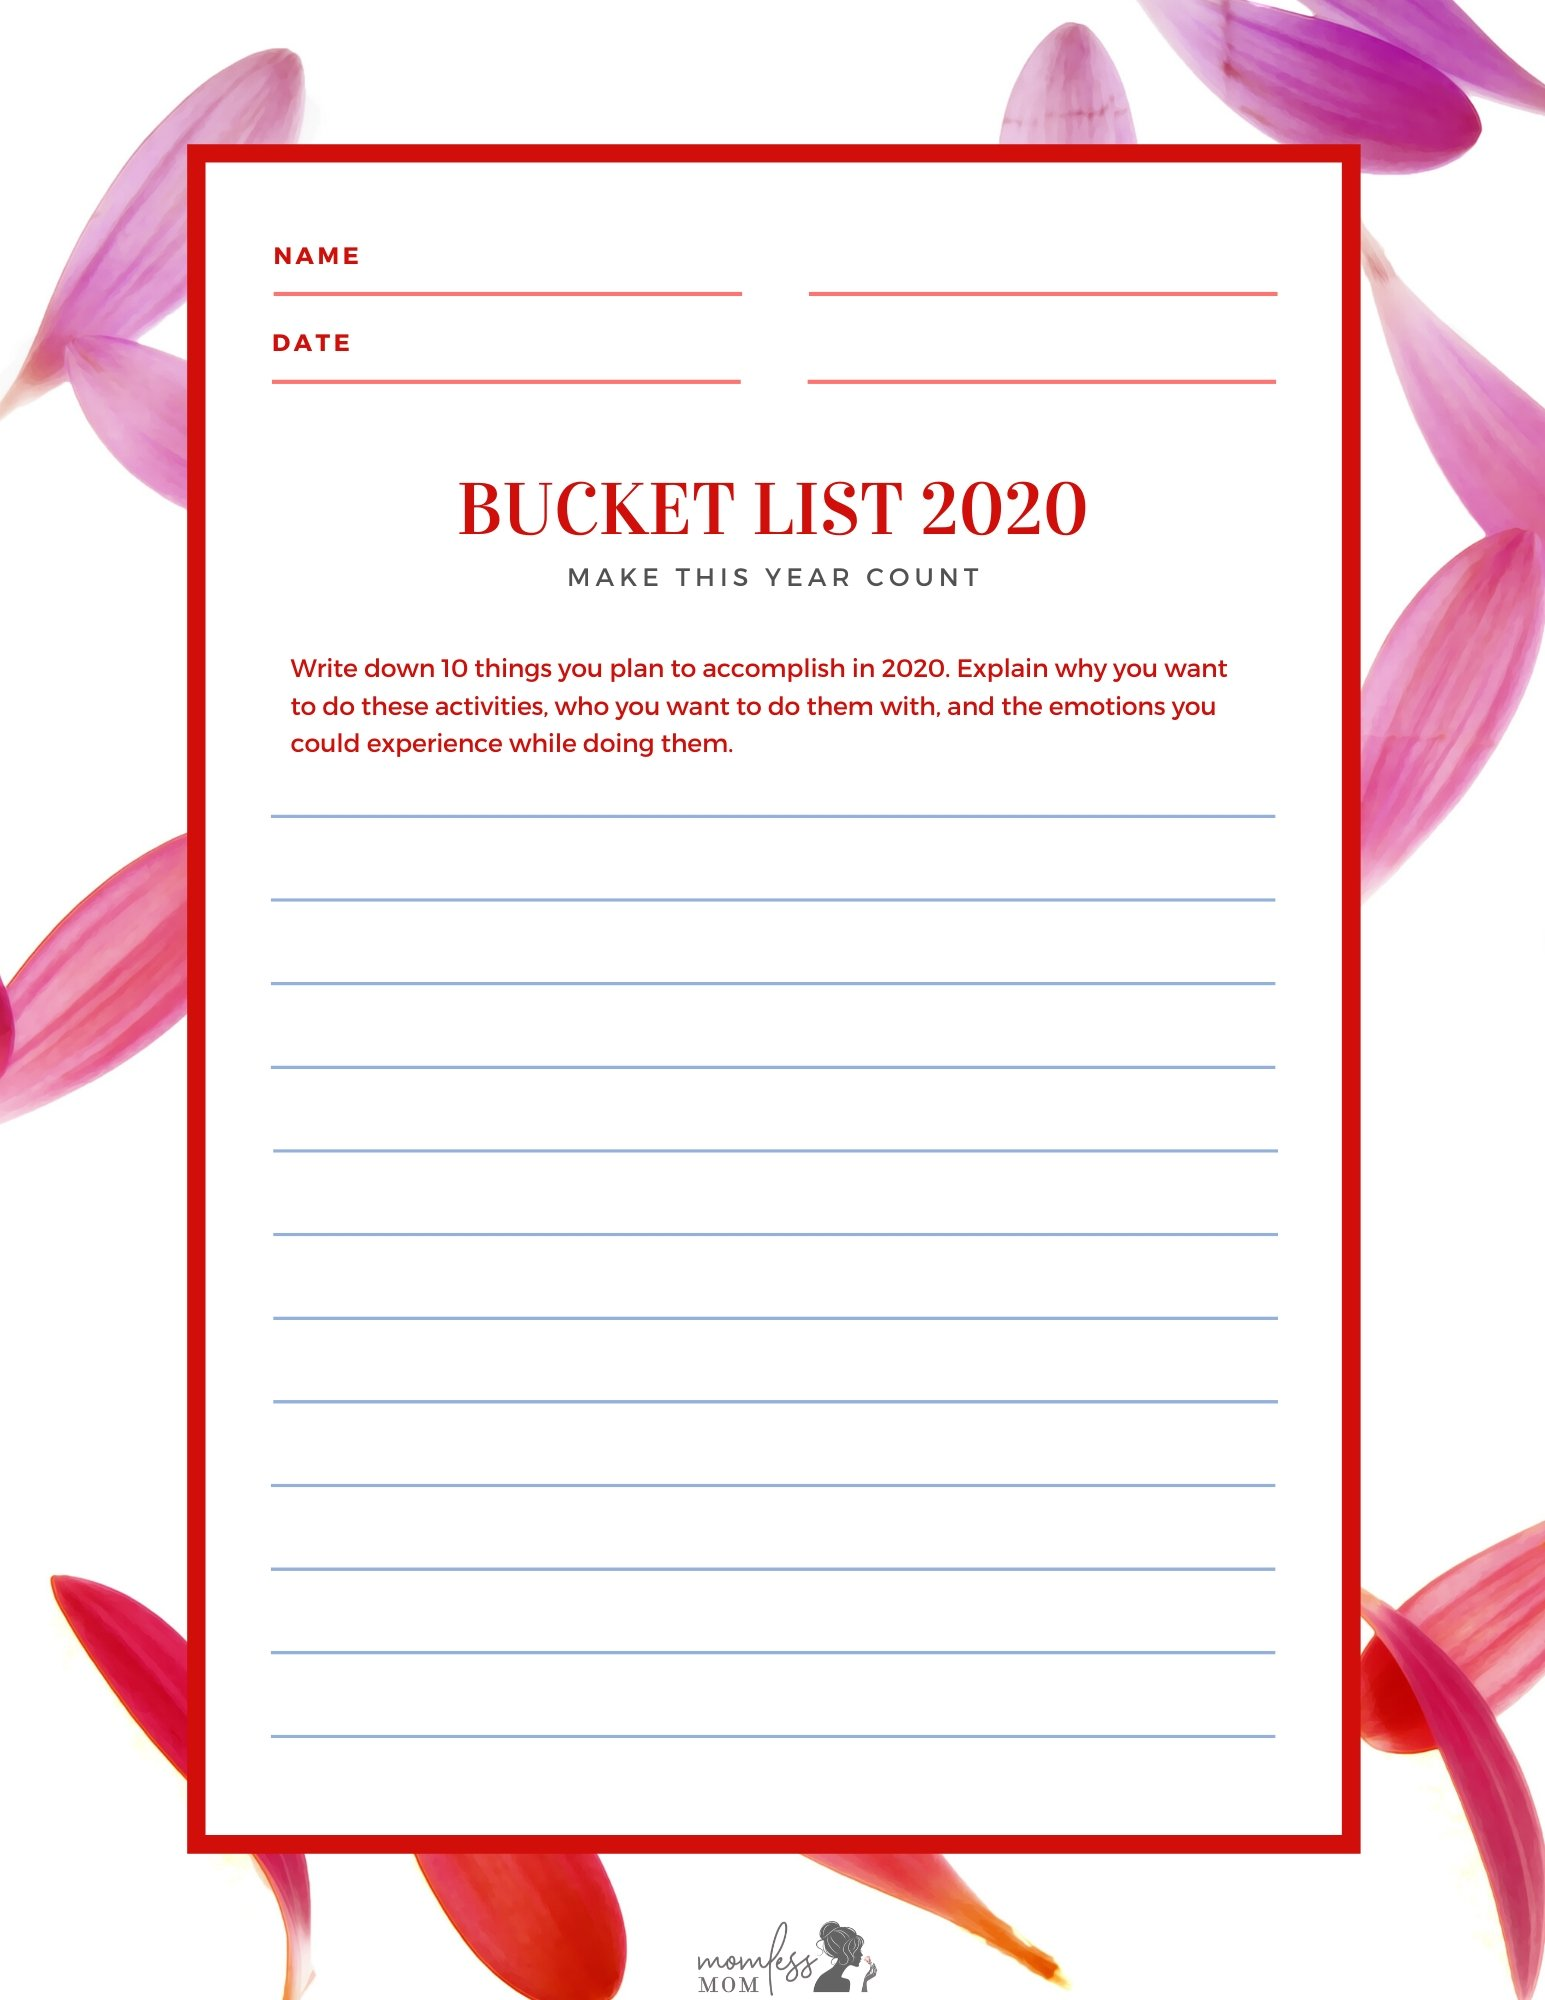 New year messages and bucketlist